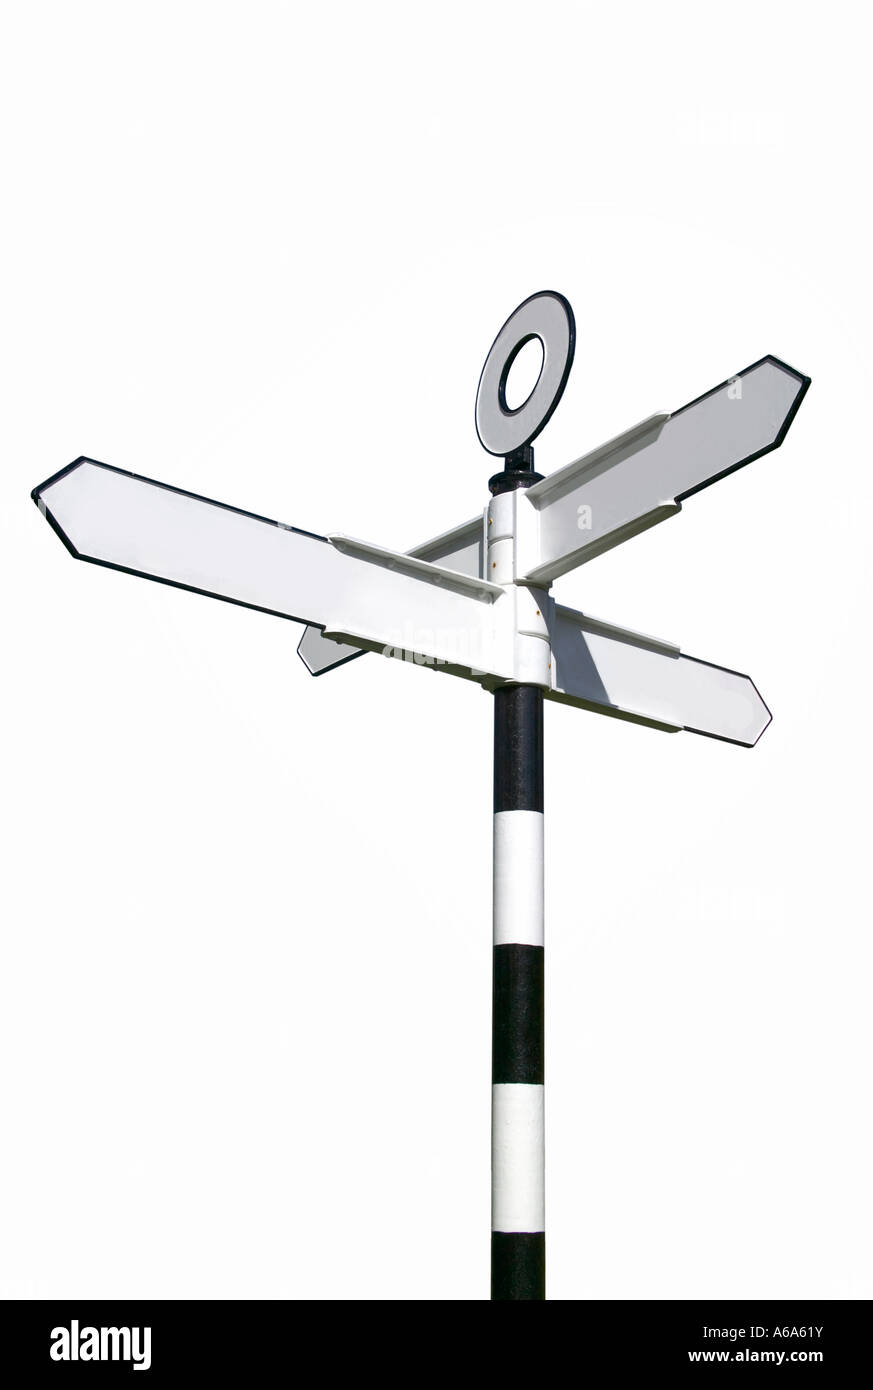 Traditional English village signpost blank for your own text - Stock Image